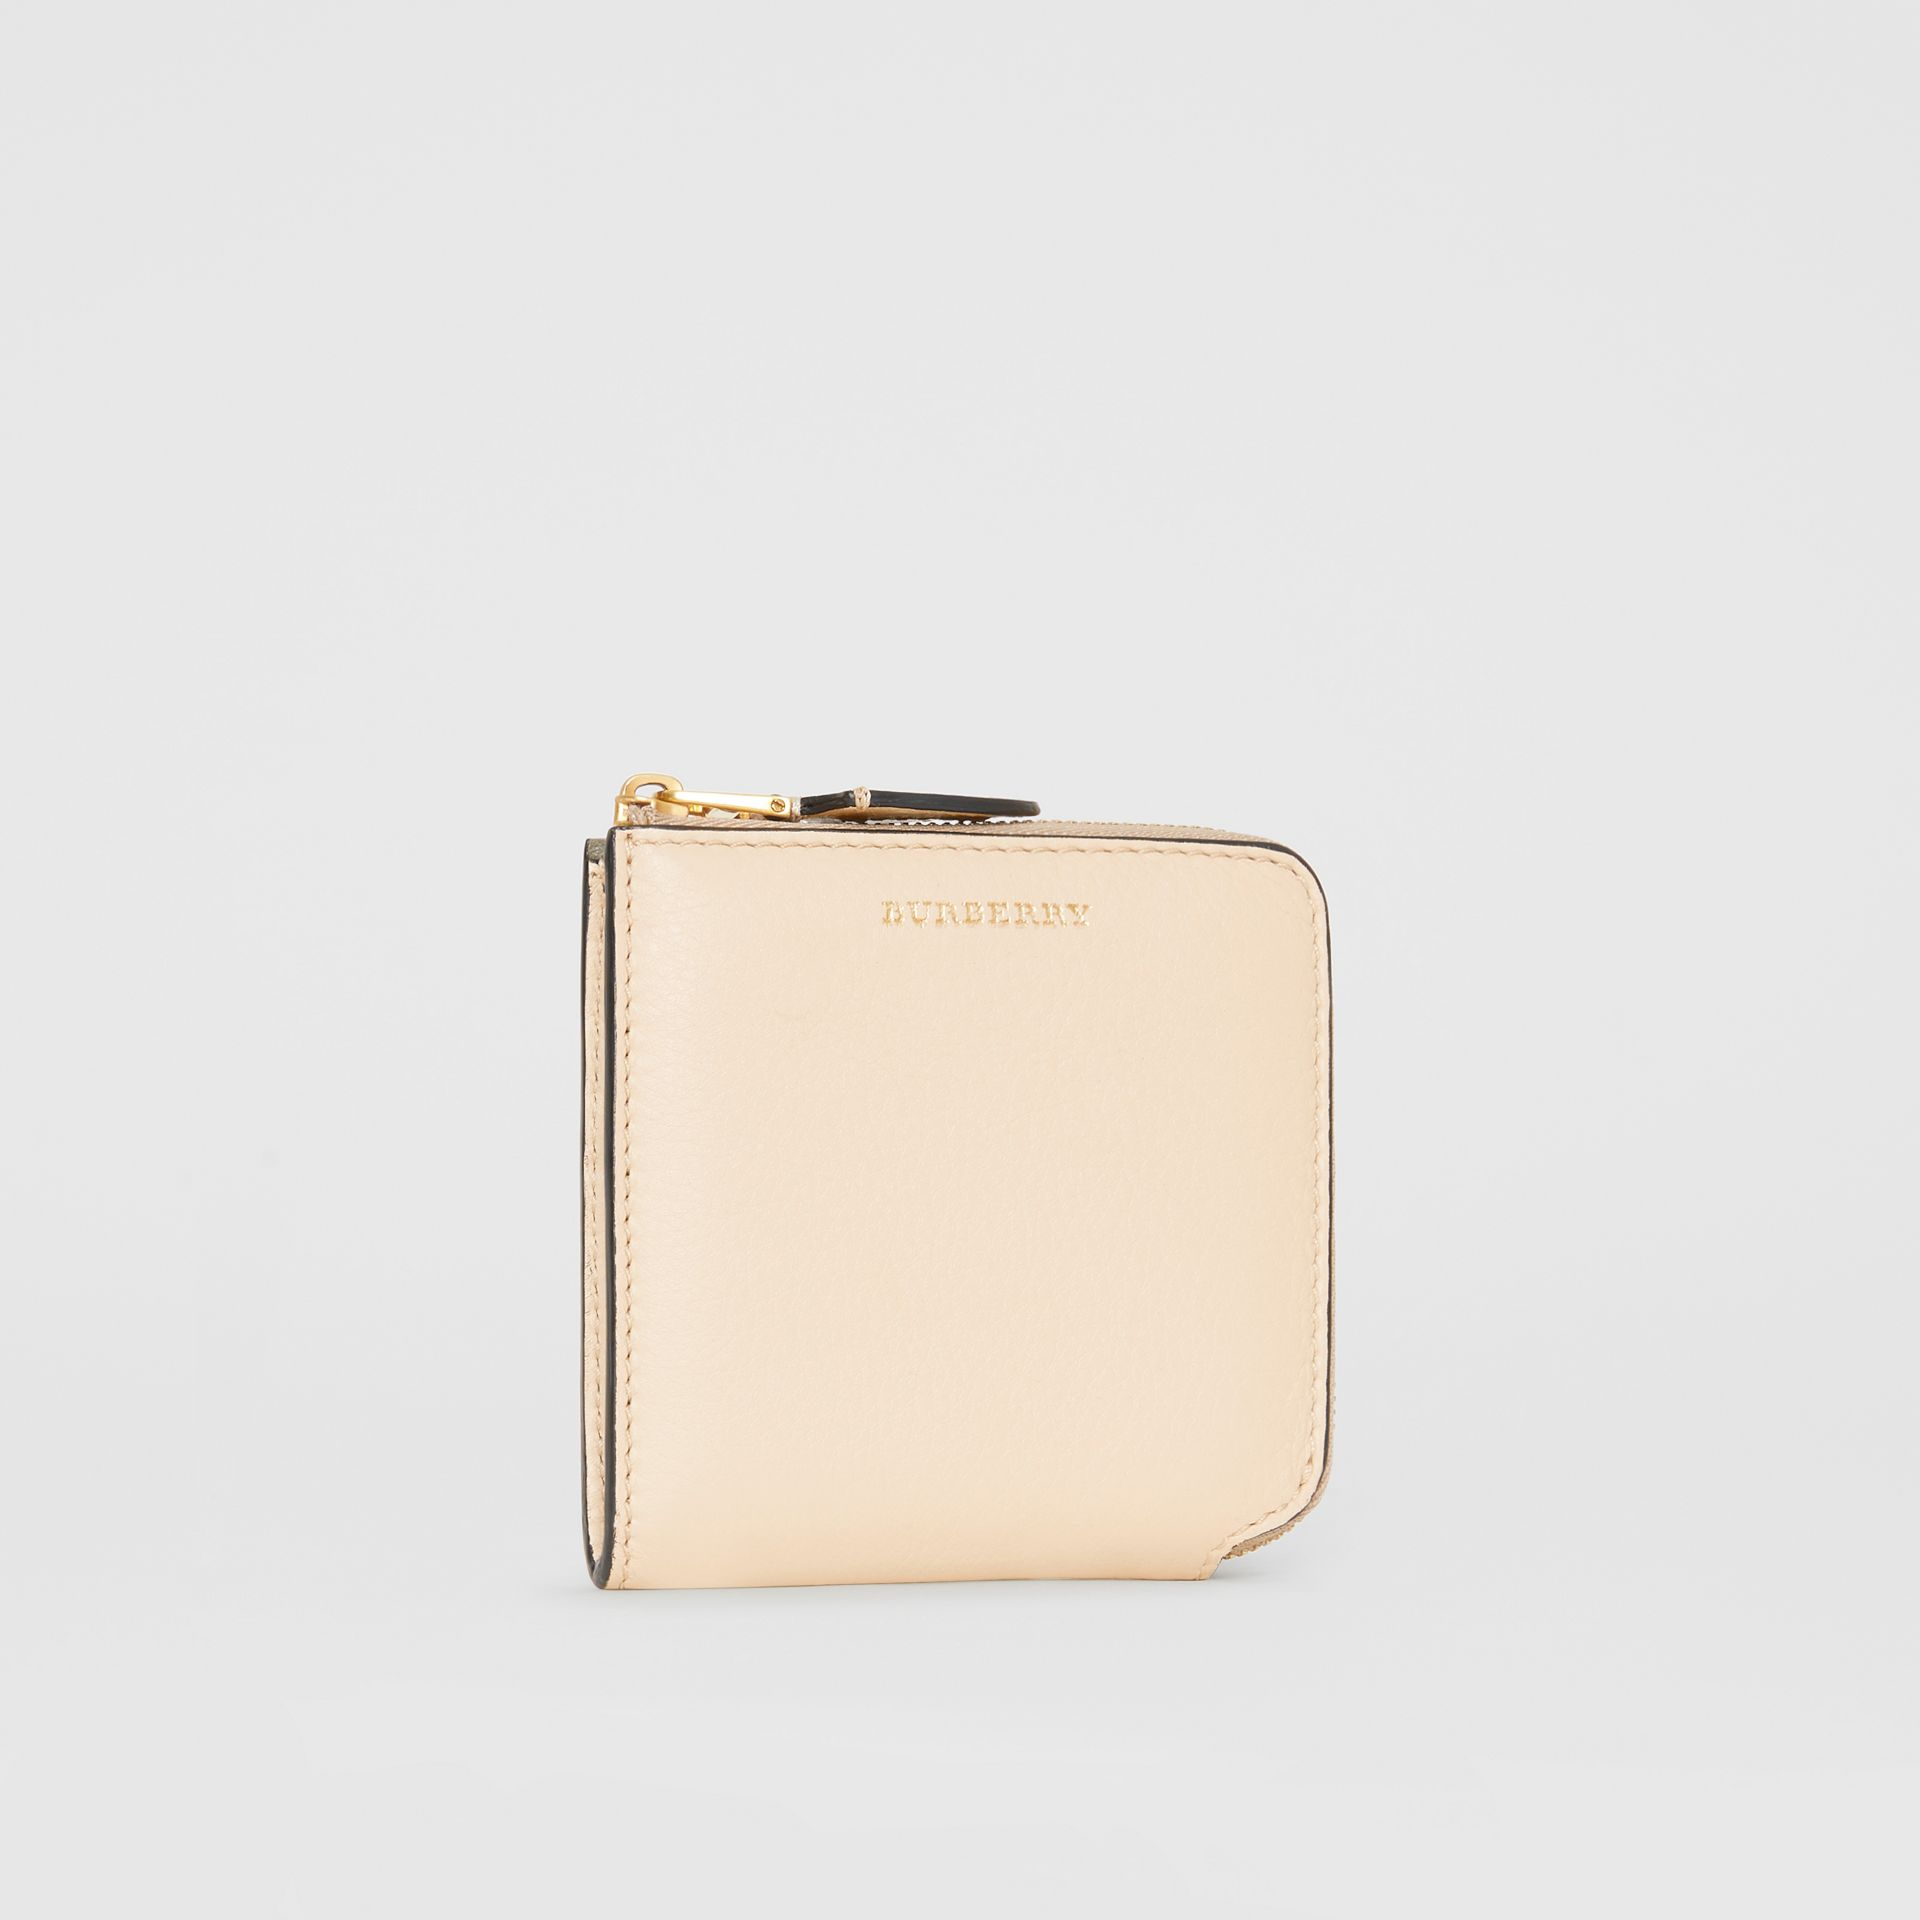 Grainy Leather Square Ziparound Wallet in Limestone - Women | Burberry - gallery image 4